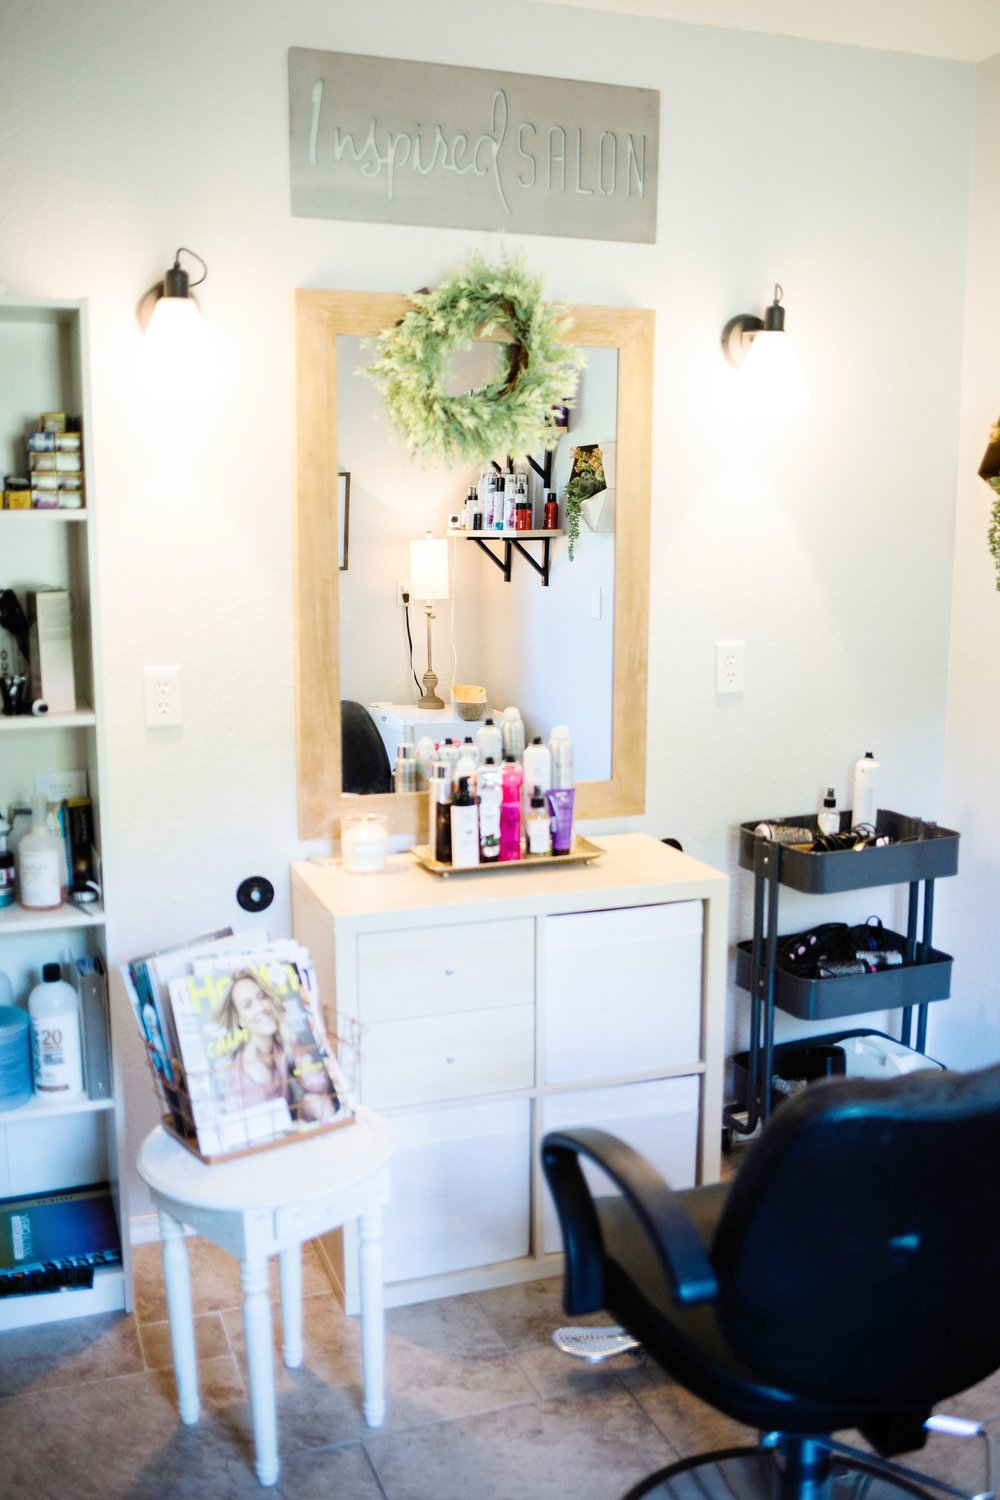 Inspired Salon  Sarah Ashley Photography-3.jpg